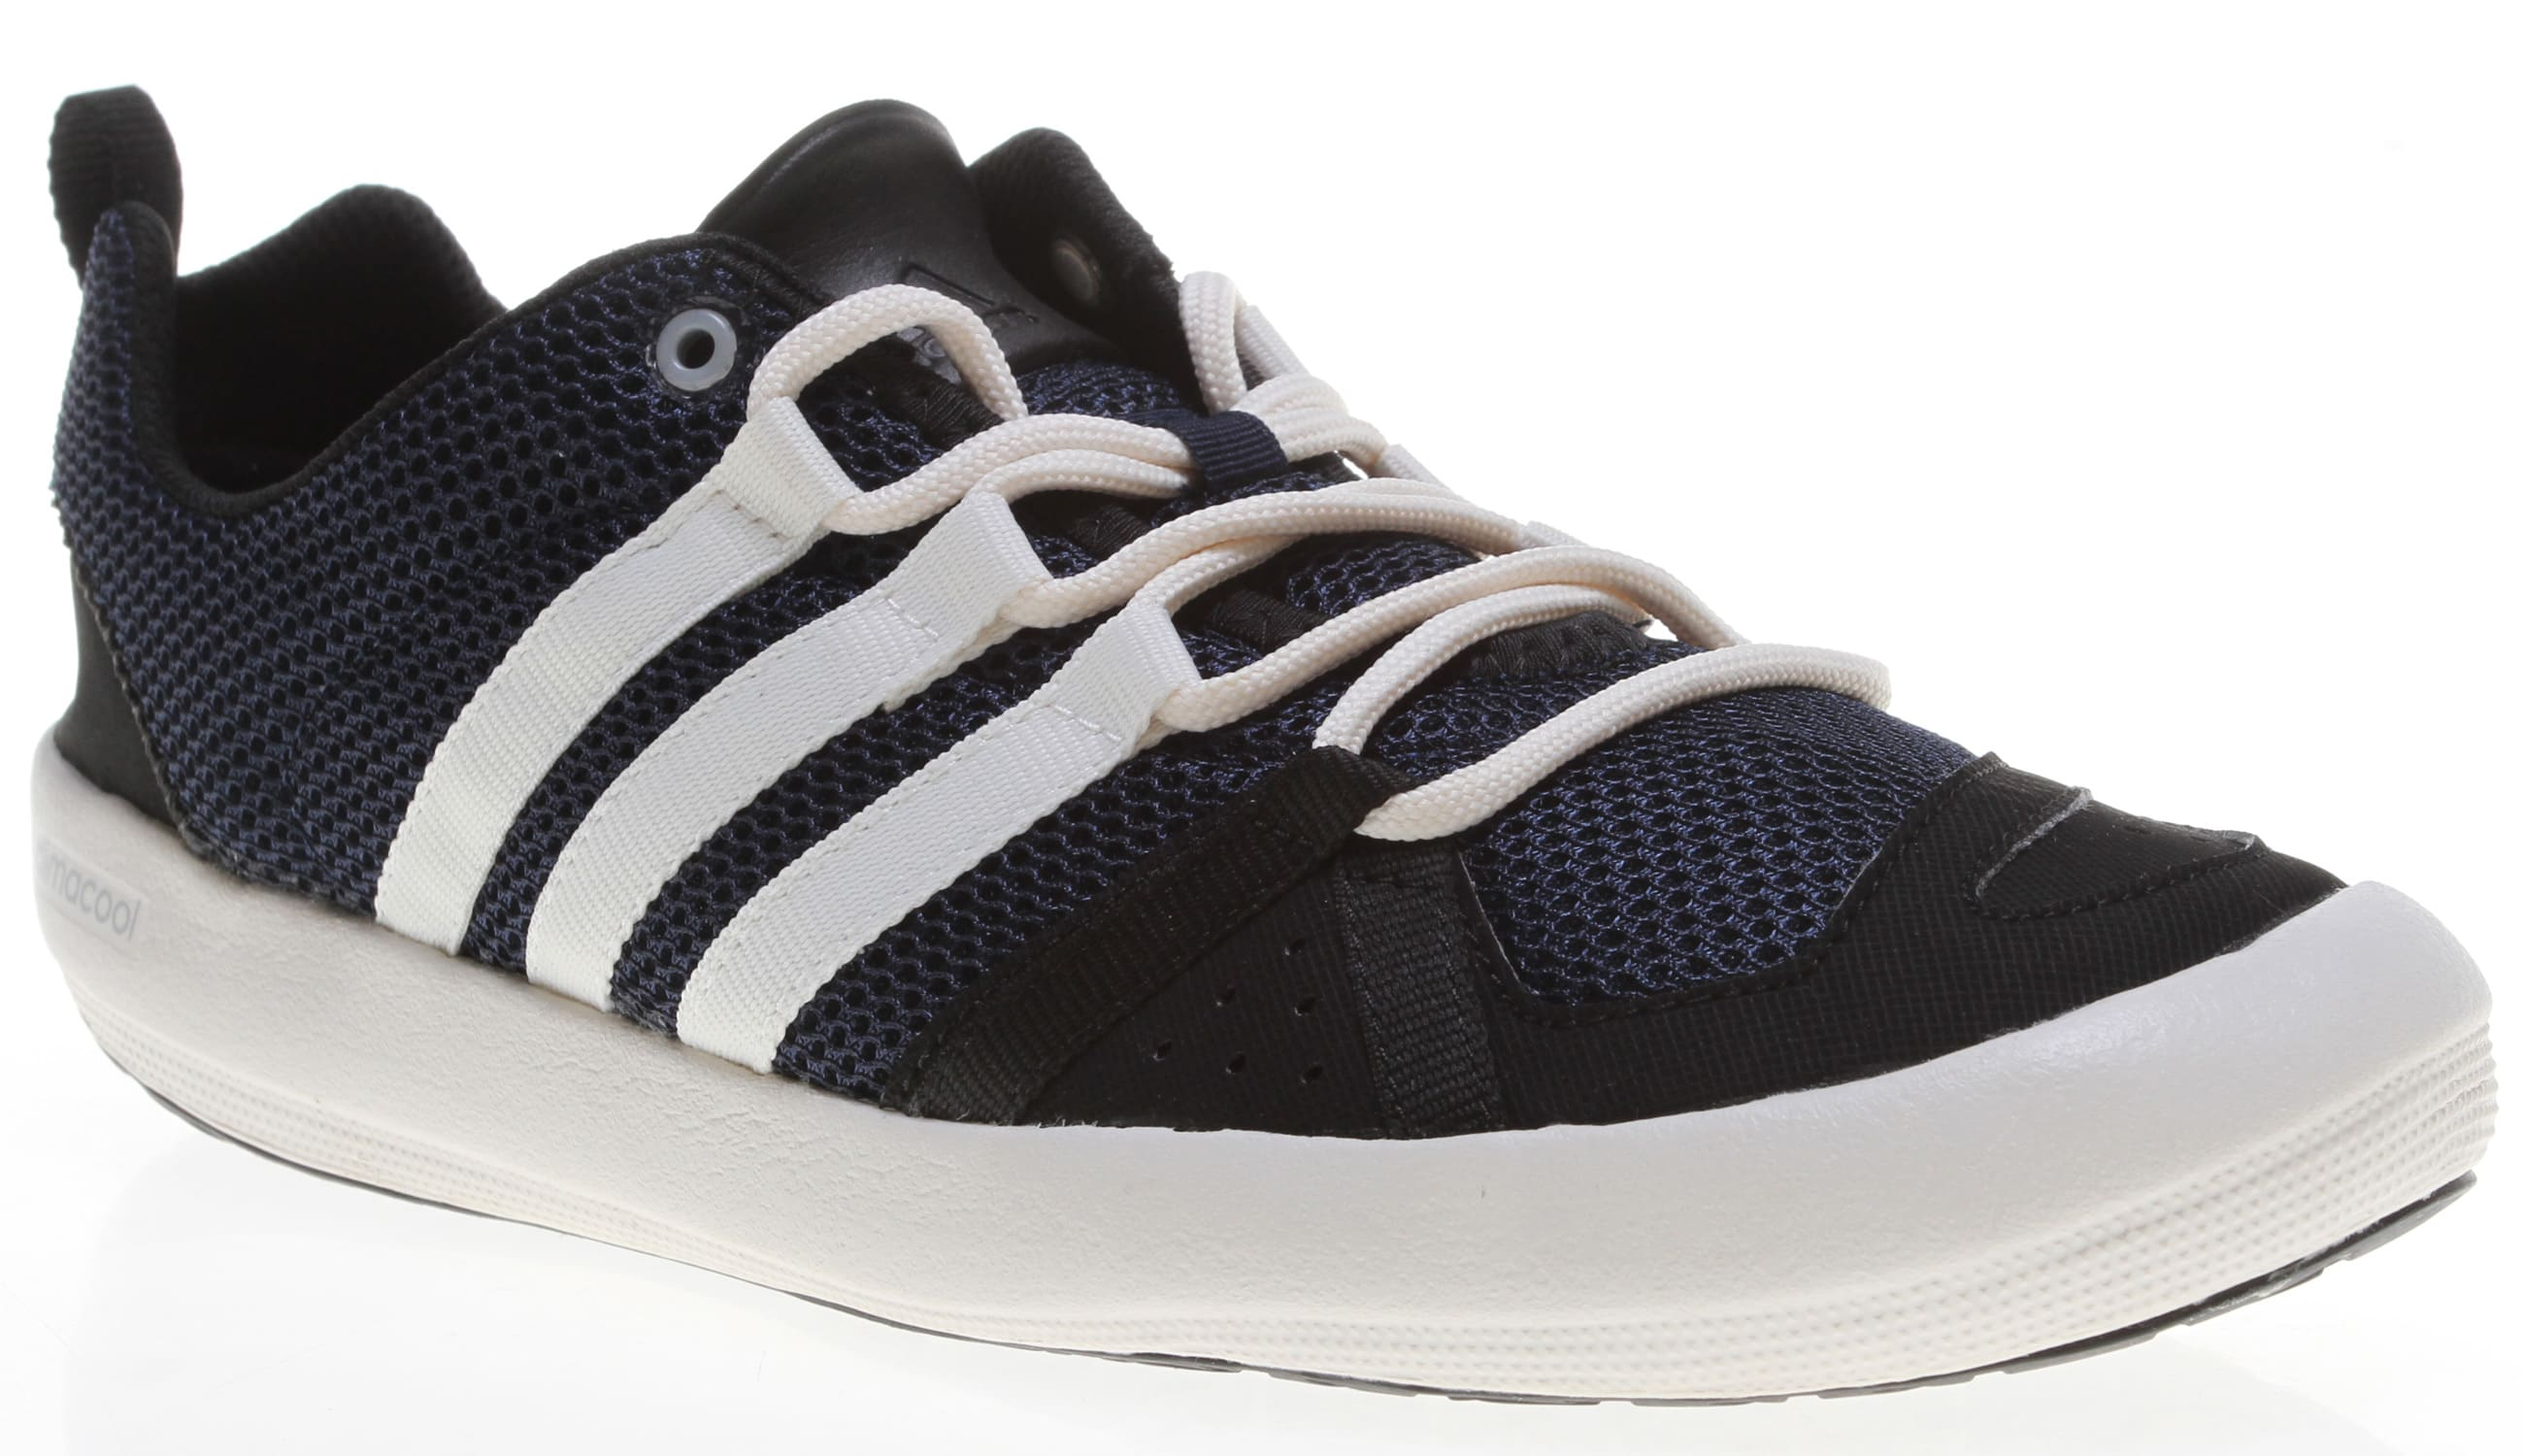 on sale adidas climacool boat lace water shoes up to 40 off. Black Bedroom Furniture Sets. Home Design Ideas